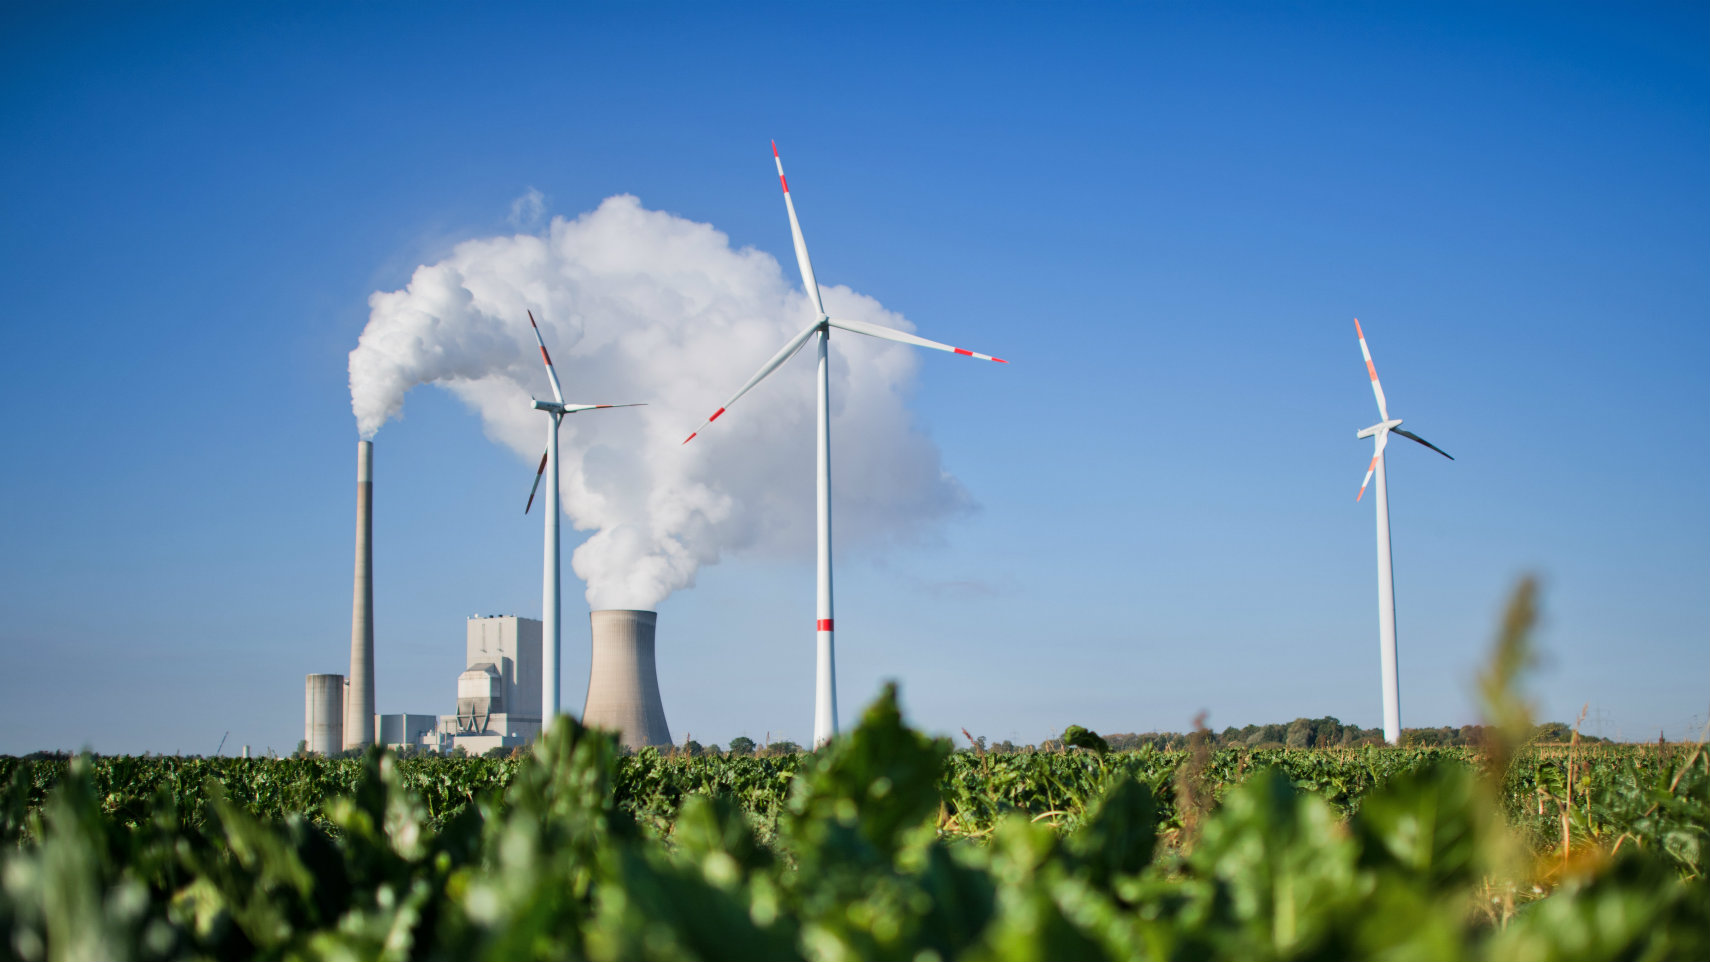 The coal power plant Mehrum and wind turbines producing energy in Hohenhameln, Germany